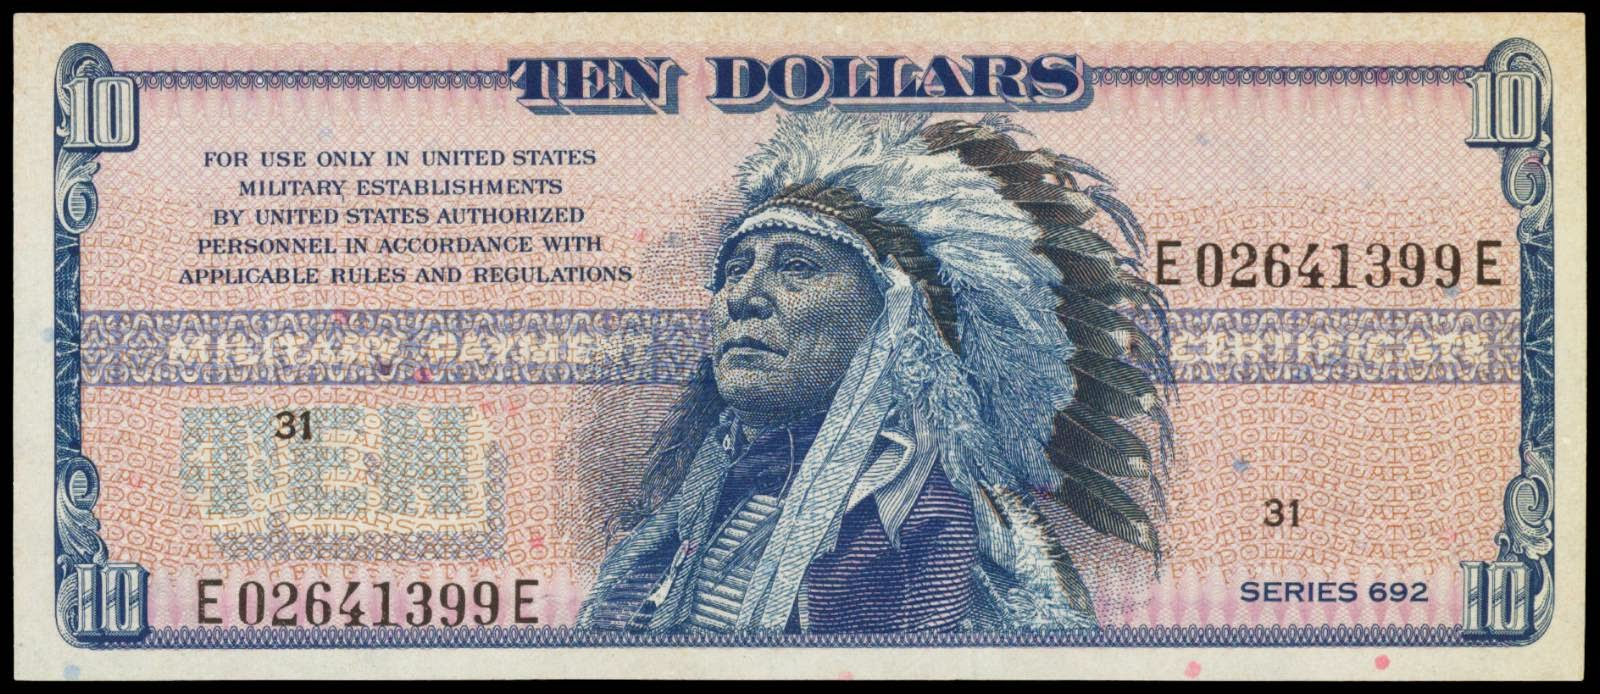 10 Dollar bill MPC Military Payment Certificate Series 692 Indian Chief Hollow Horn Bear